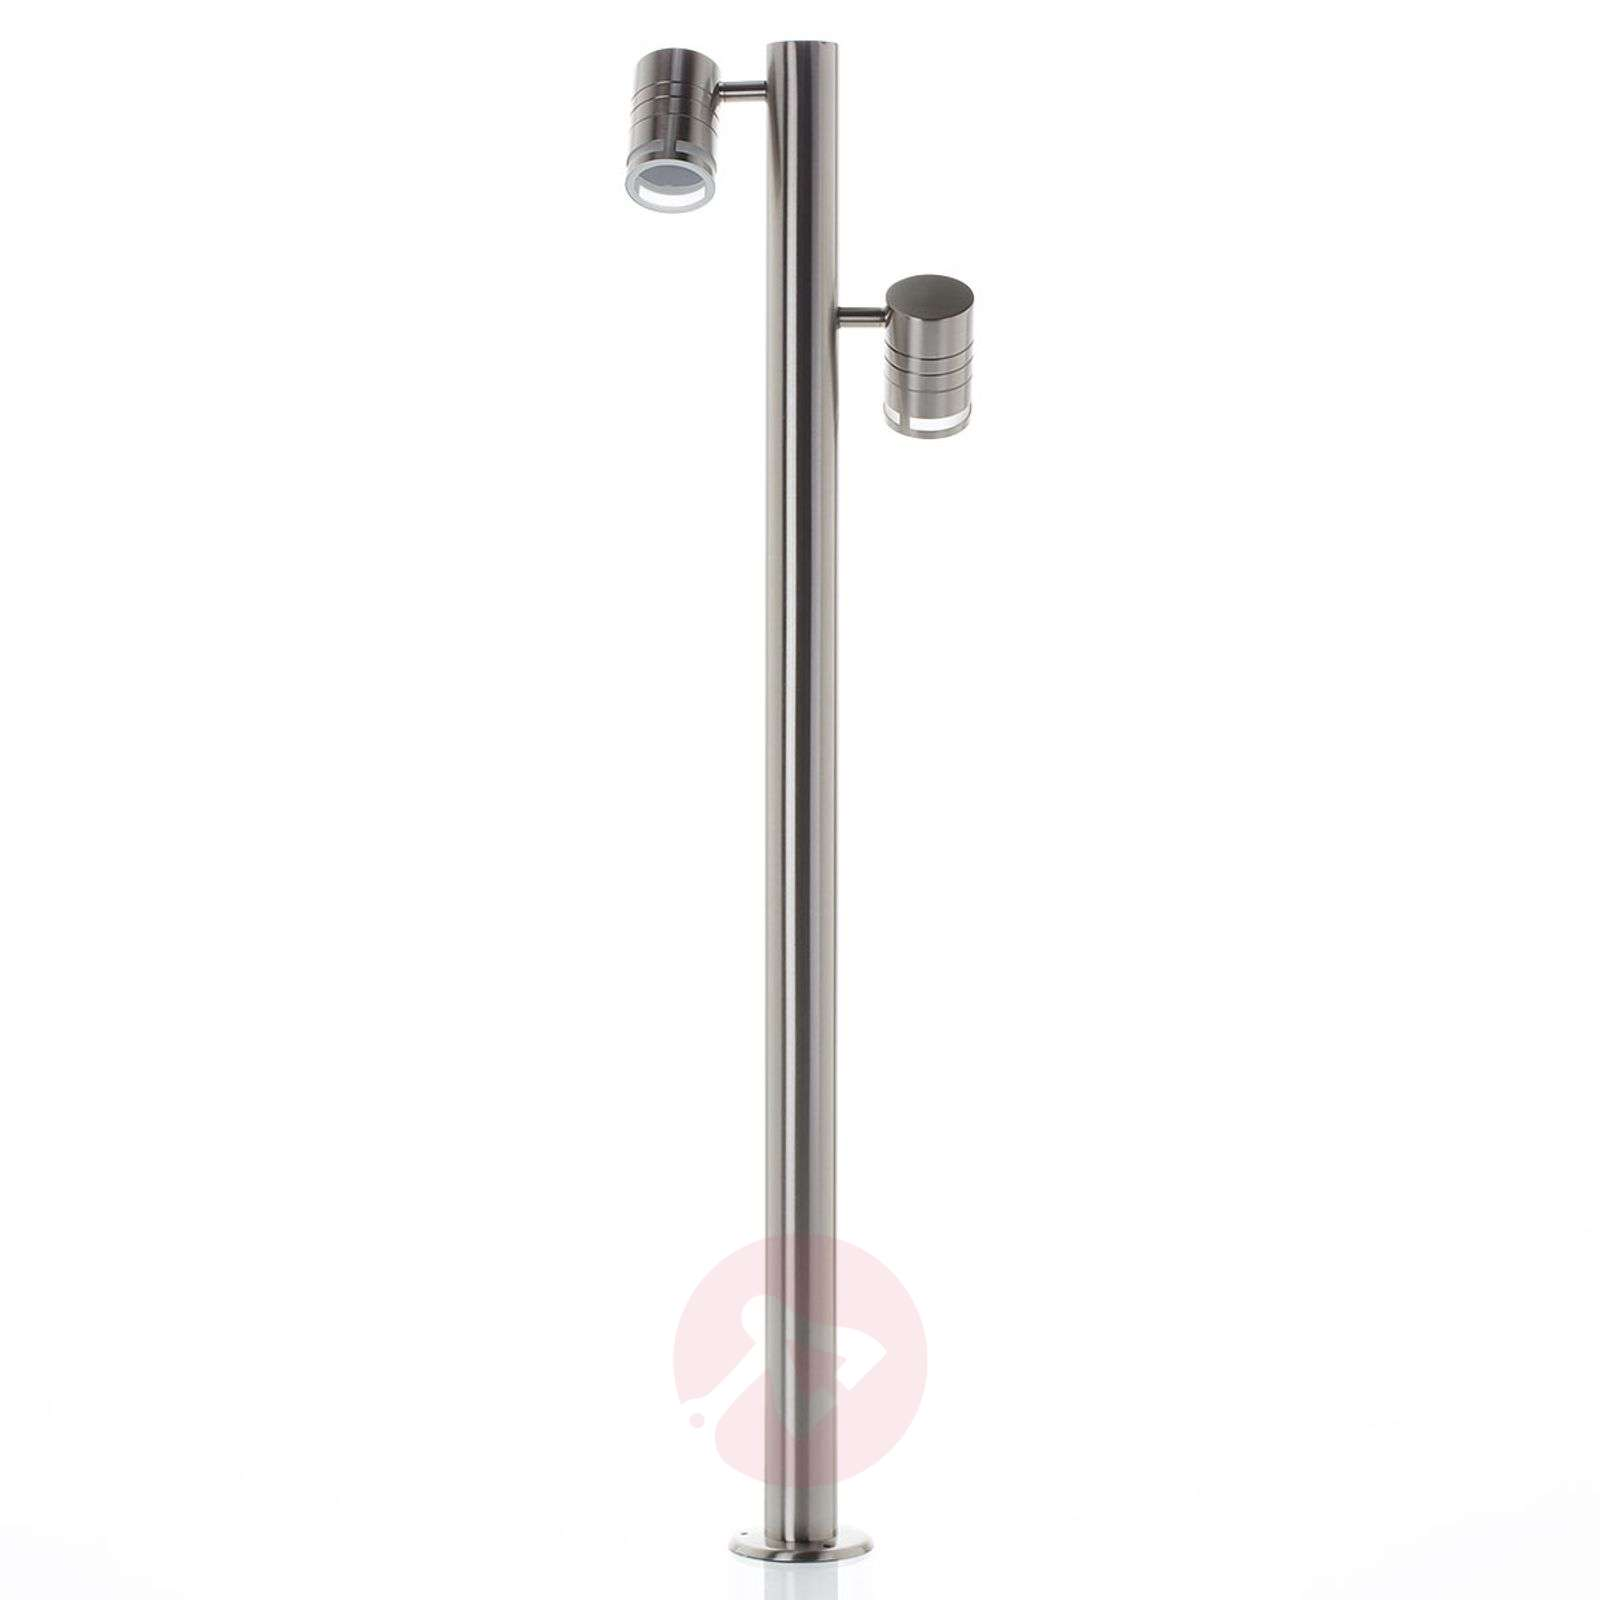 Lampioncino in acciaio inox Zilly II a 2 luci-2501417-04